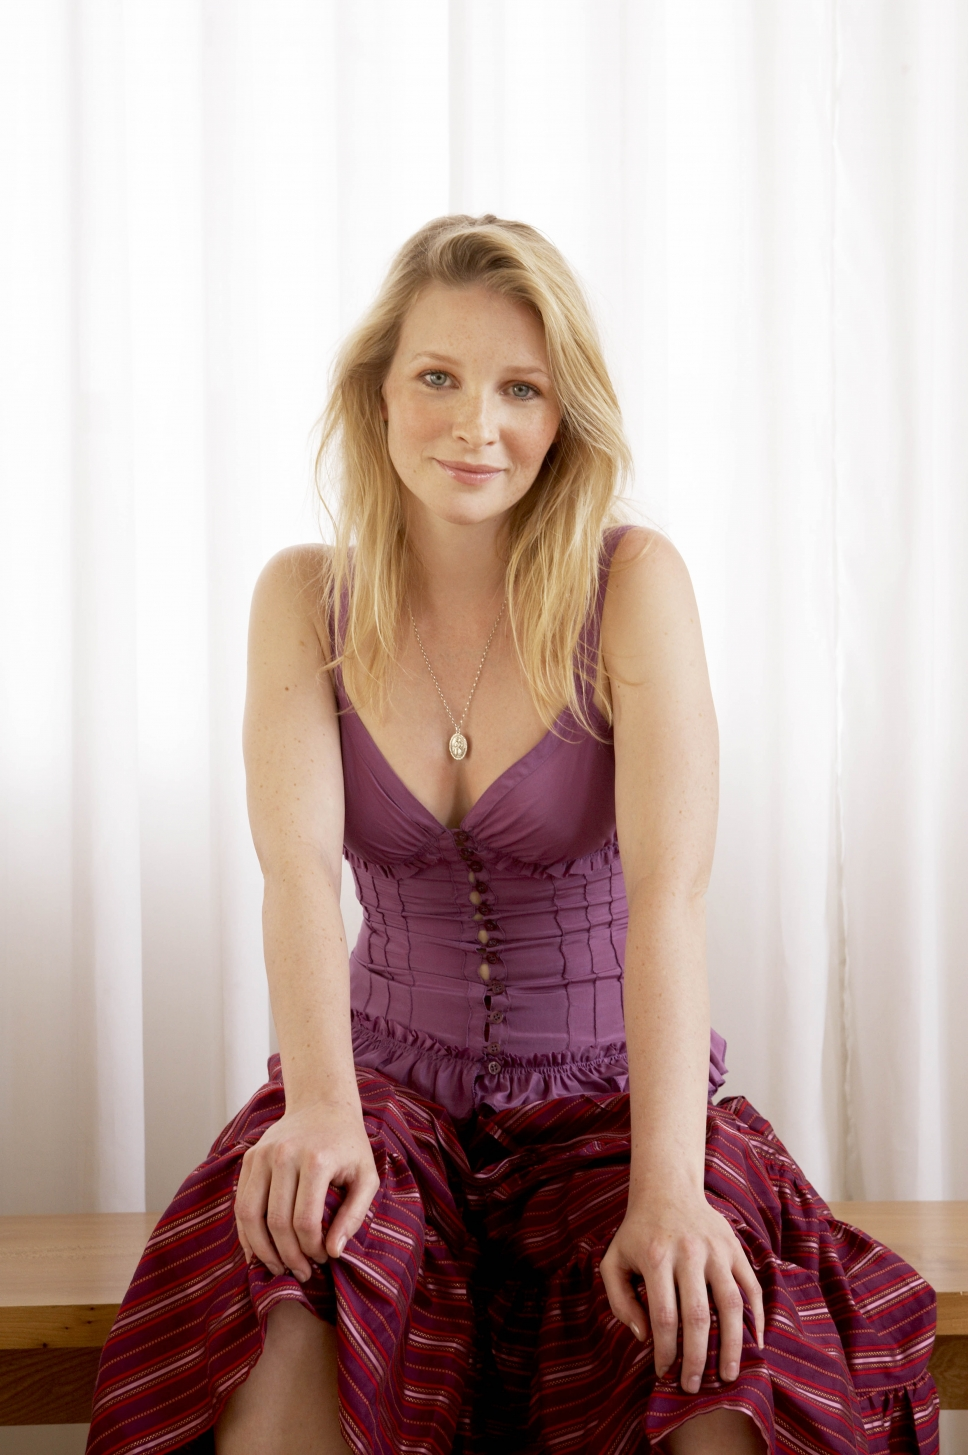 joanna page weight